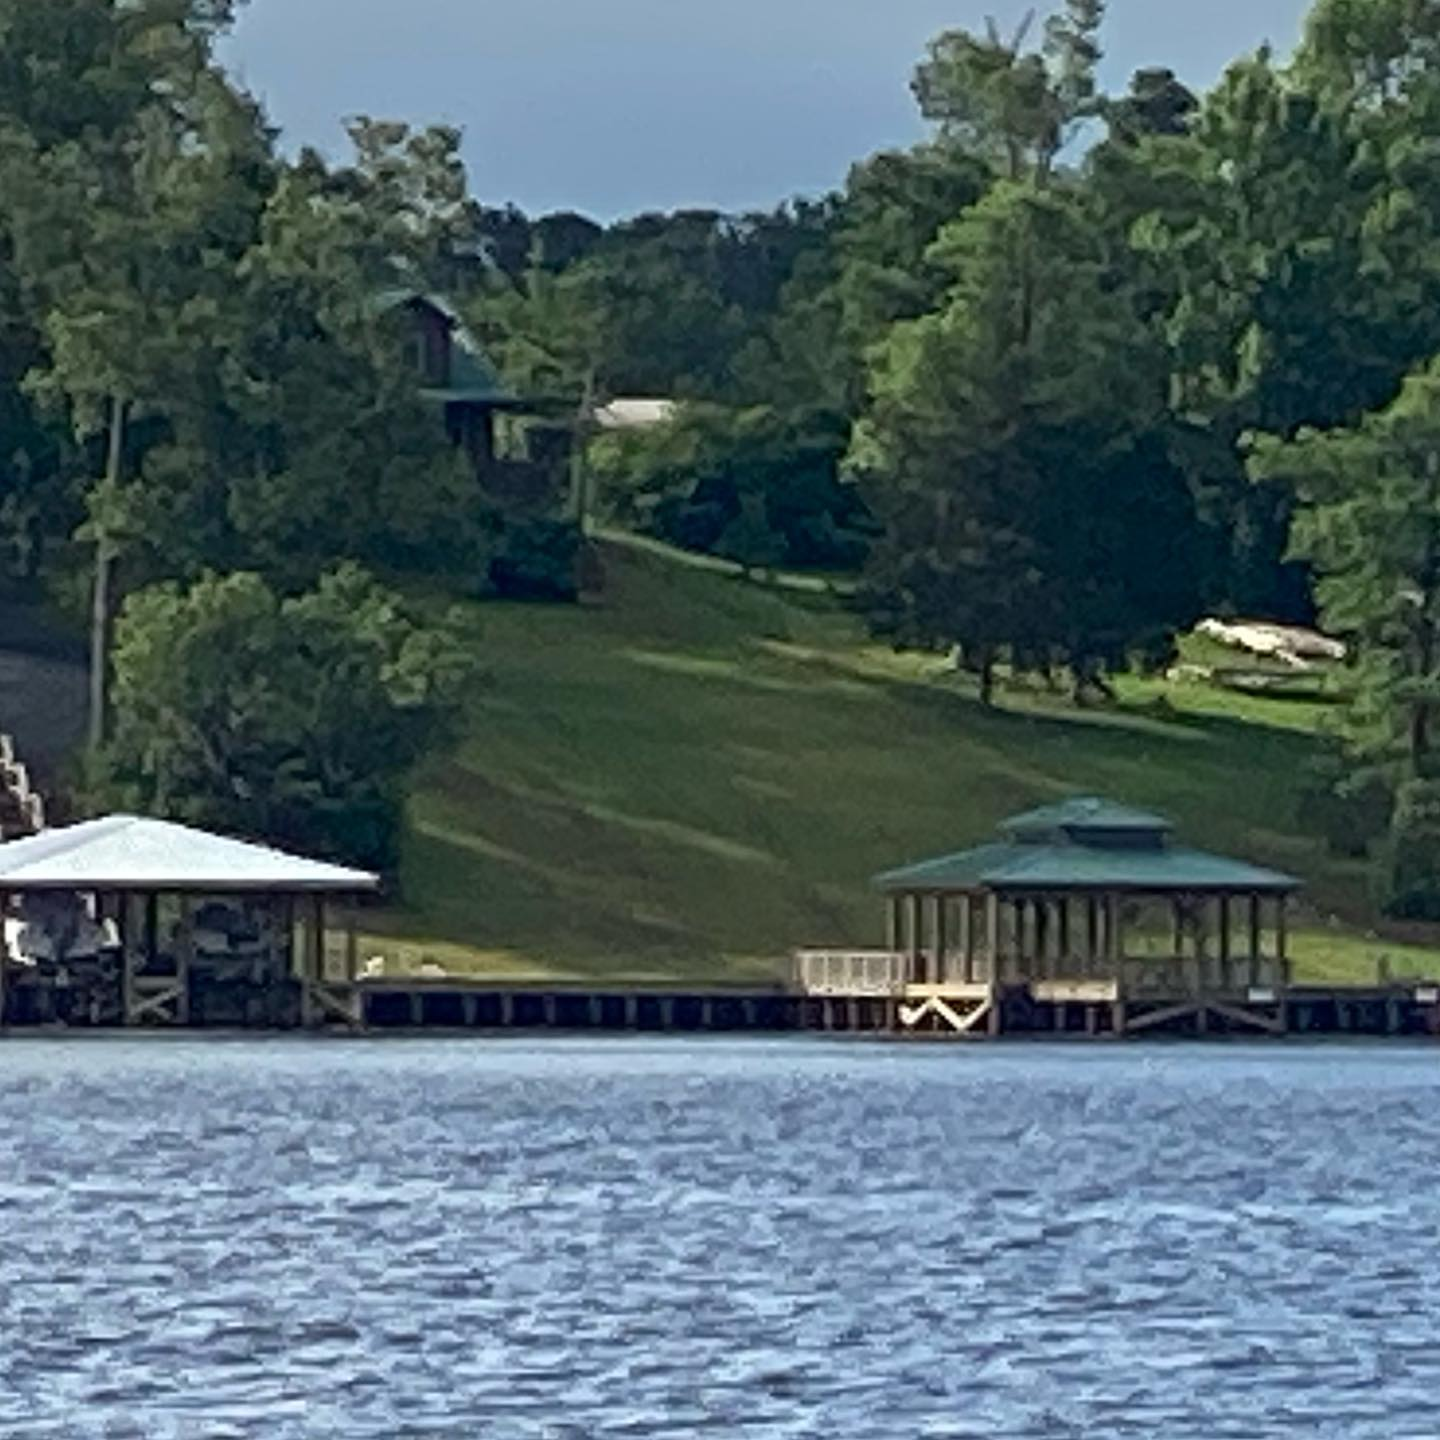 View of our green roof on the boat dock when coming in on the boat- Take me home !! #lakeviews #boatdocks #toledobendcabinrental #lakegetaways